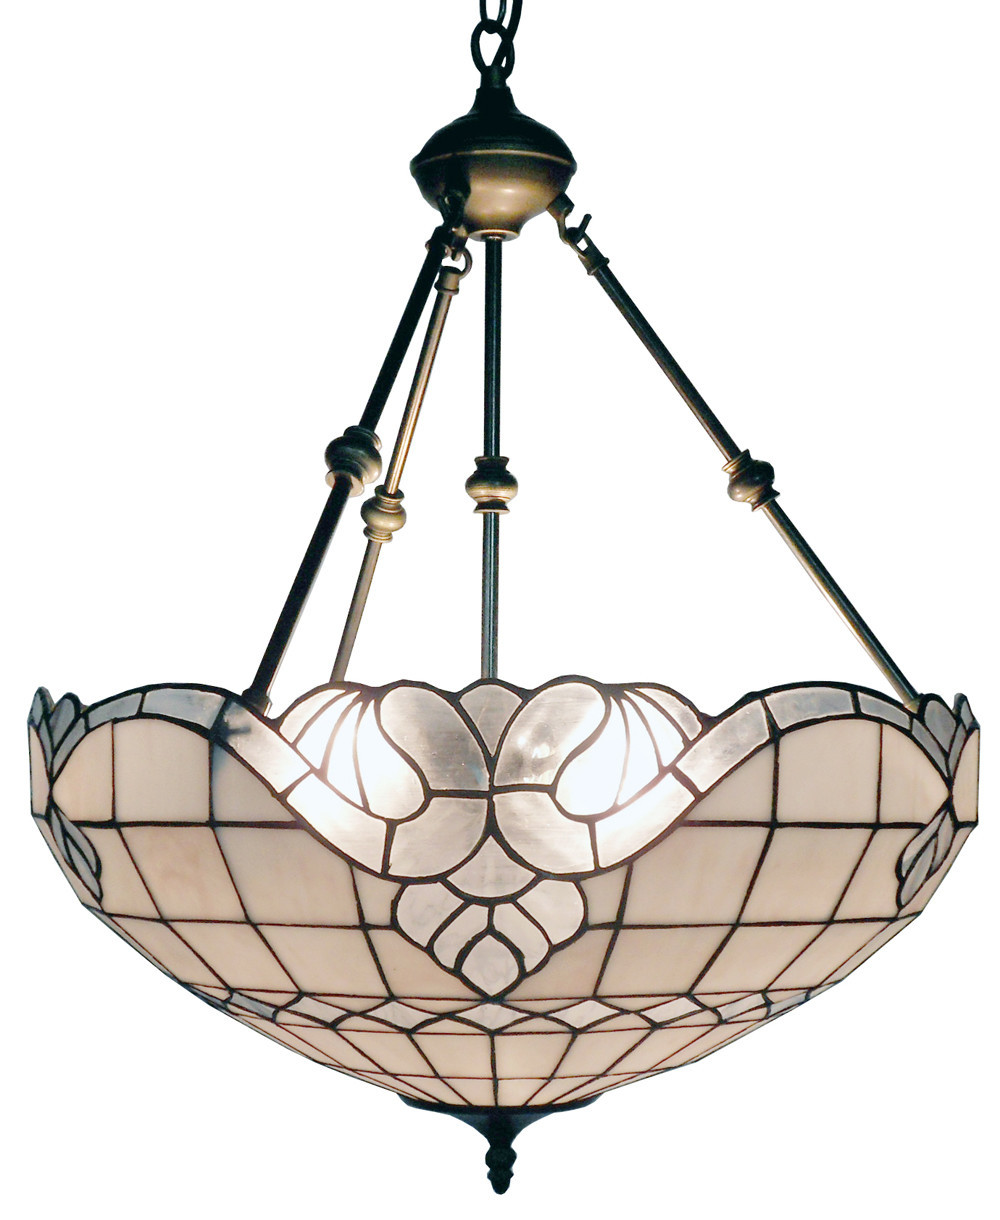 lowes fixtures mount lamps ceiling size flush value light lighting tiffany most large glass chandelier of antique room stained dining expensive pendant